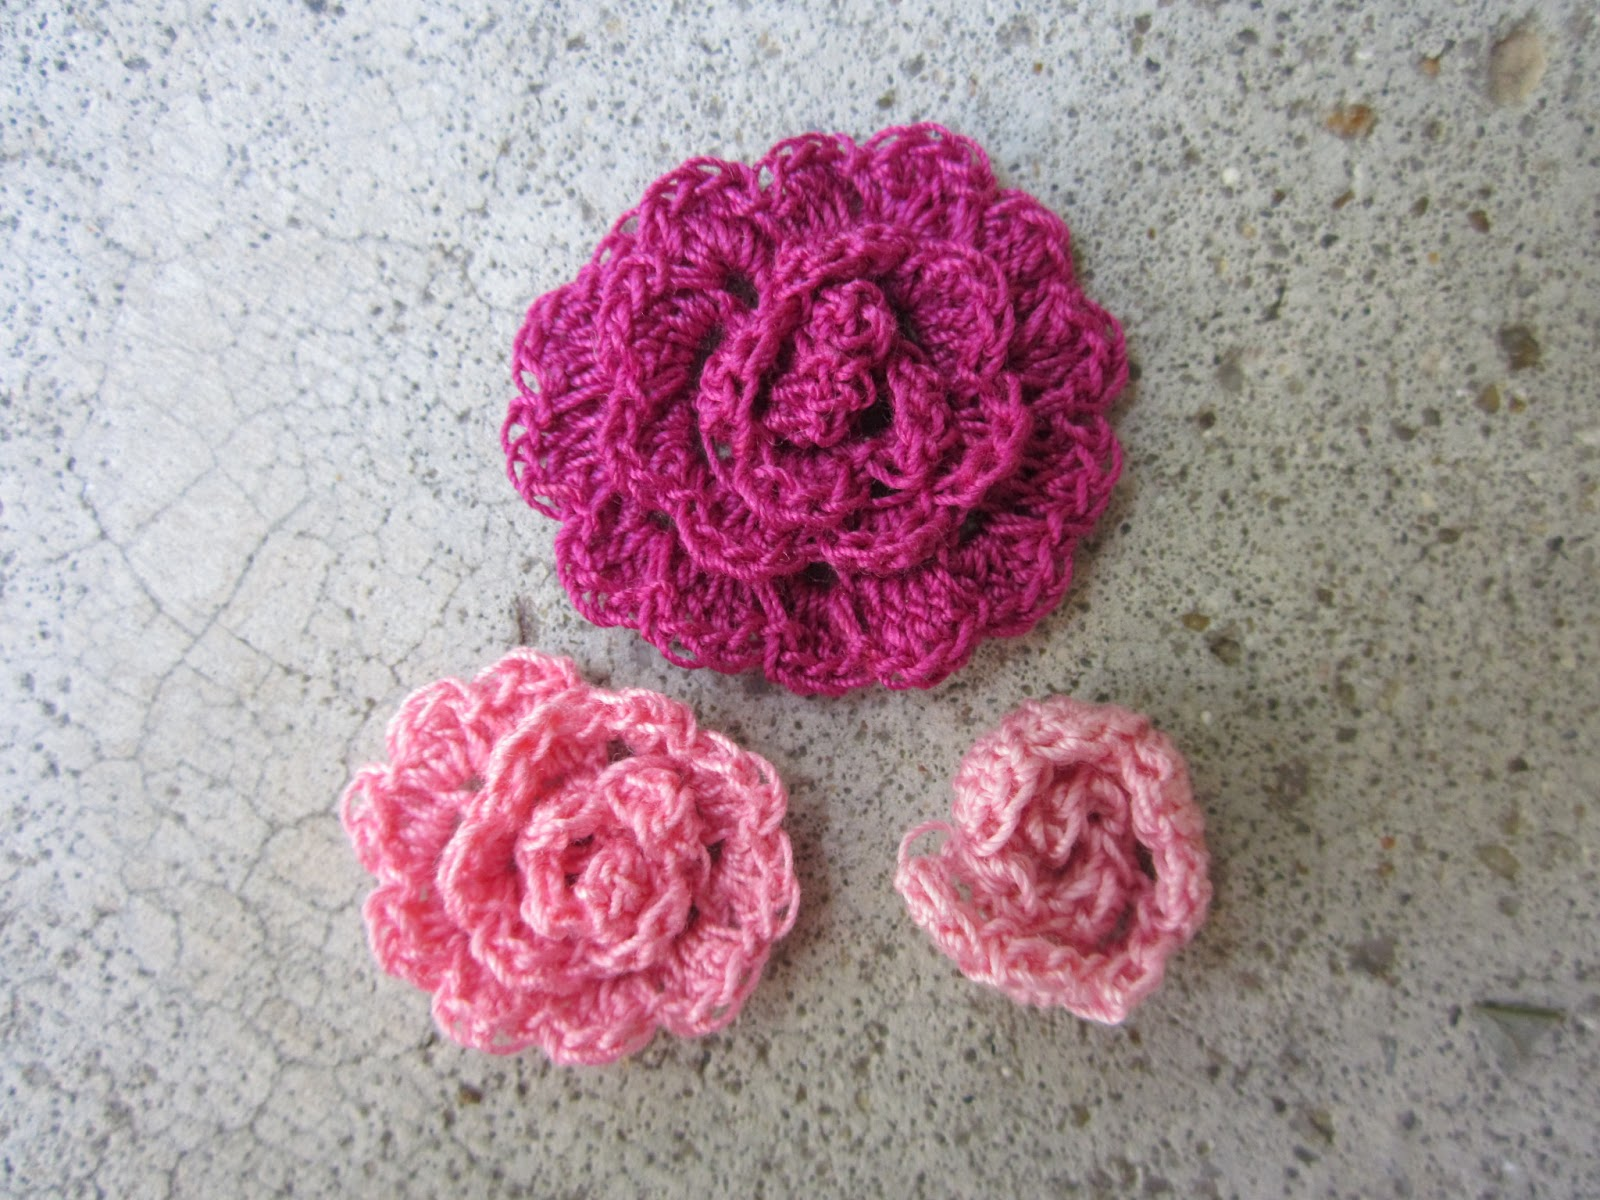 Primarily Patterns: Cabbage Rose / Peony Crochet Pattern